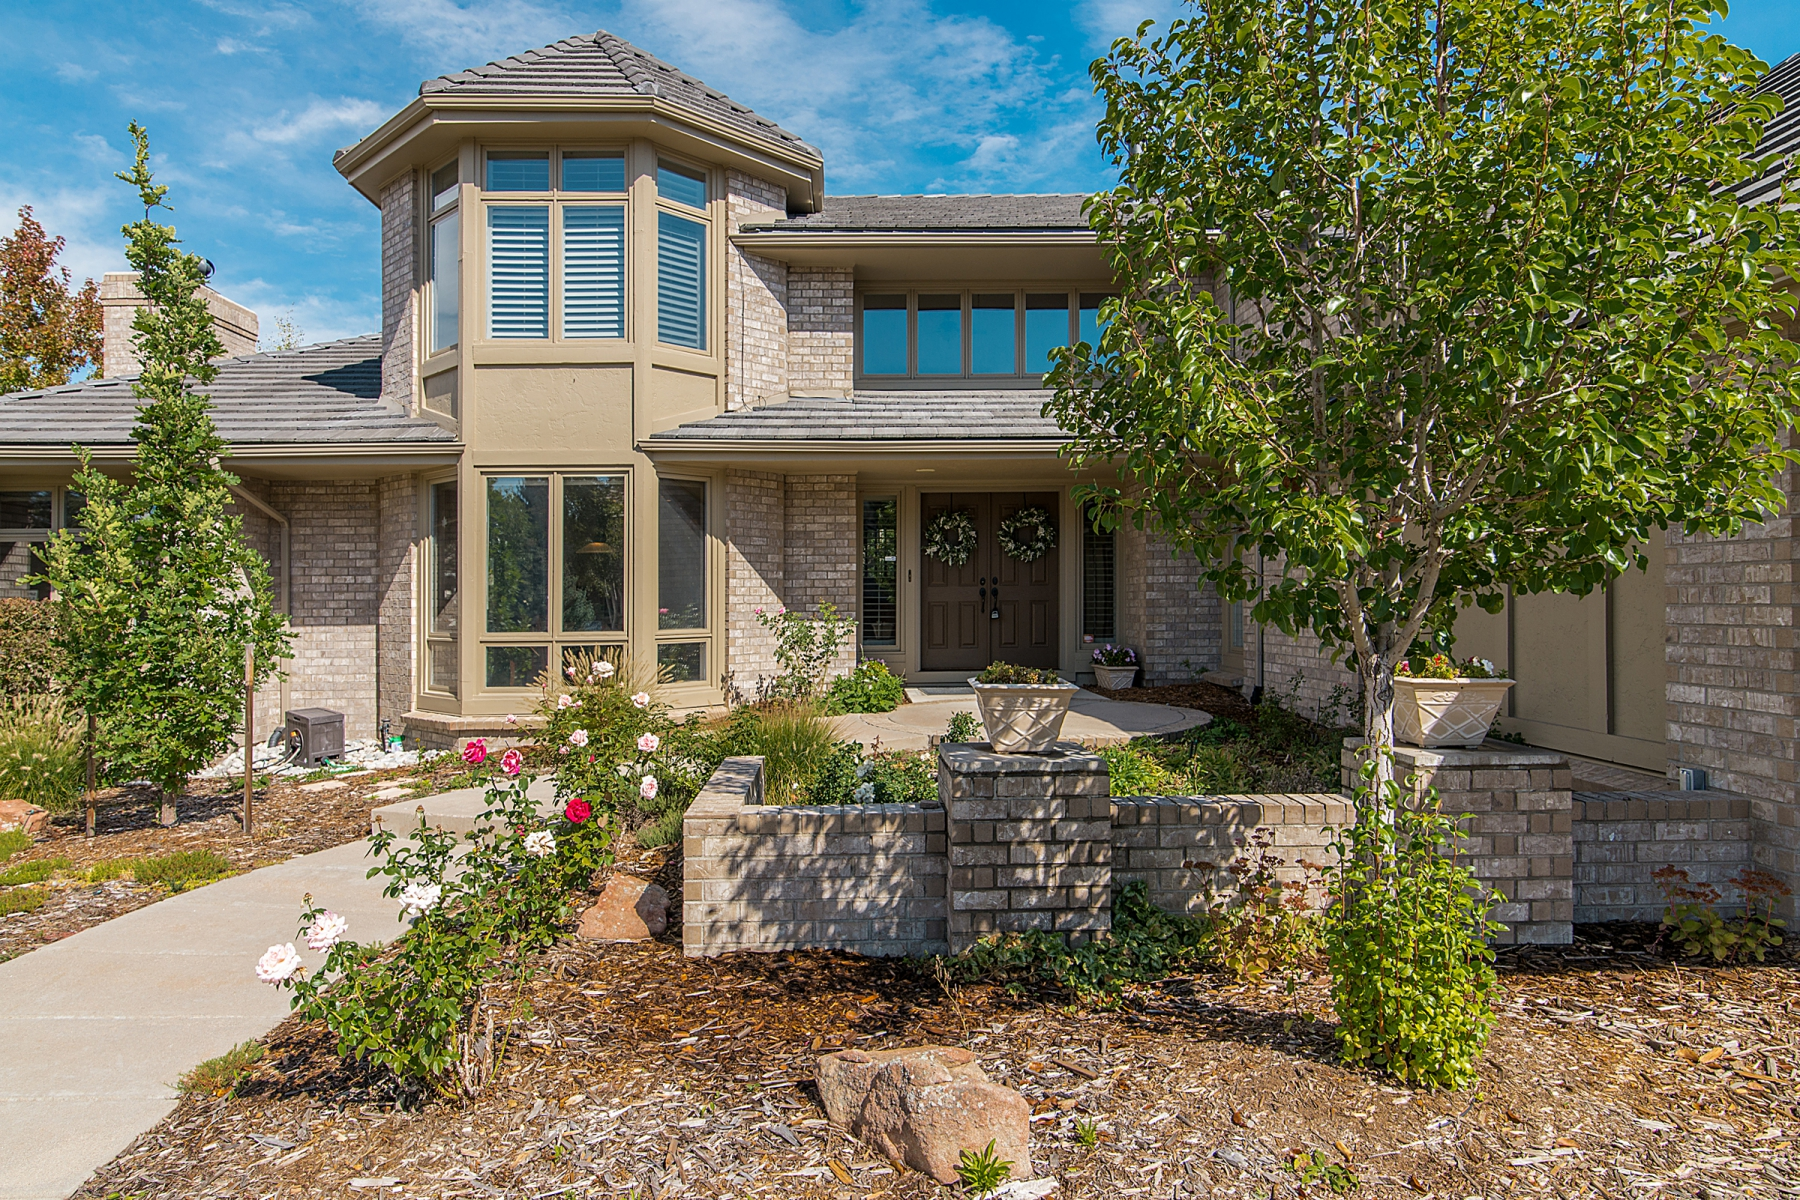 Single Family Home for Sale at Heritage greens 5495 E Otero Drive Centennial, Colorado 80122 United States